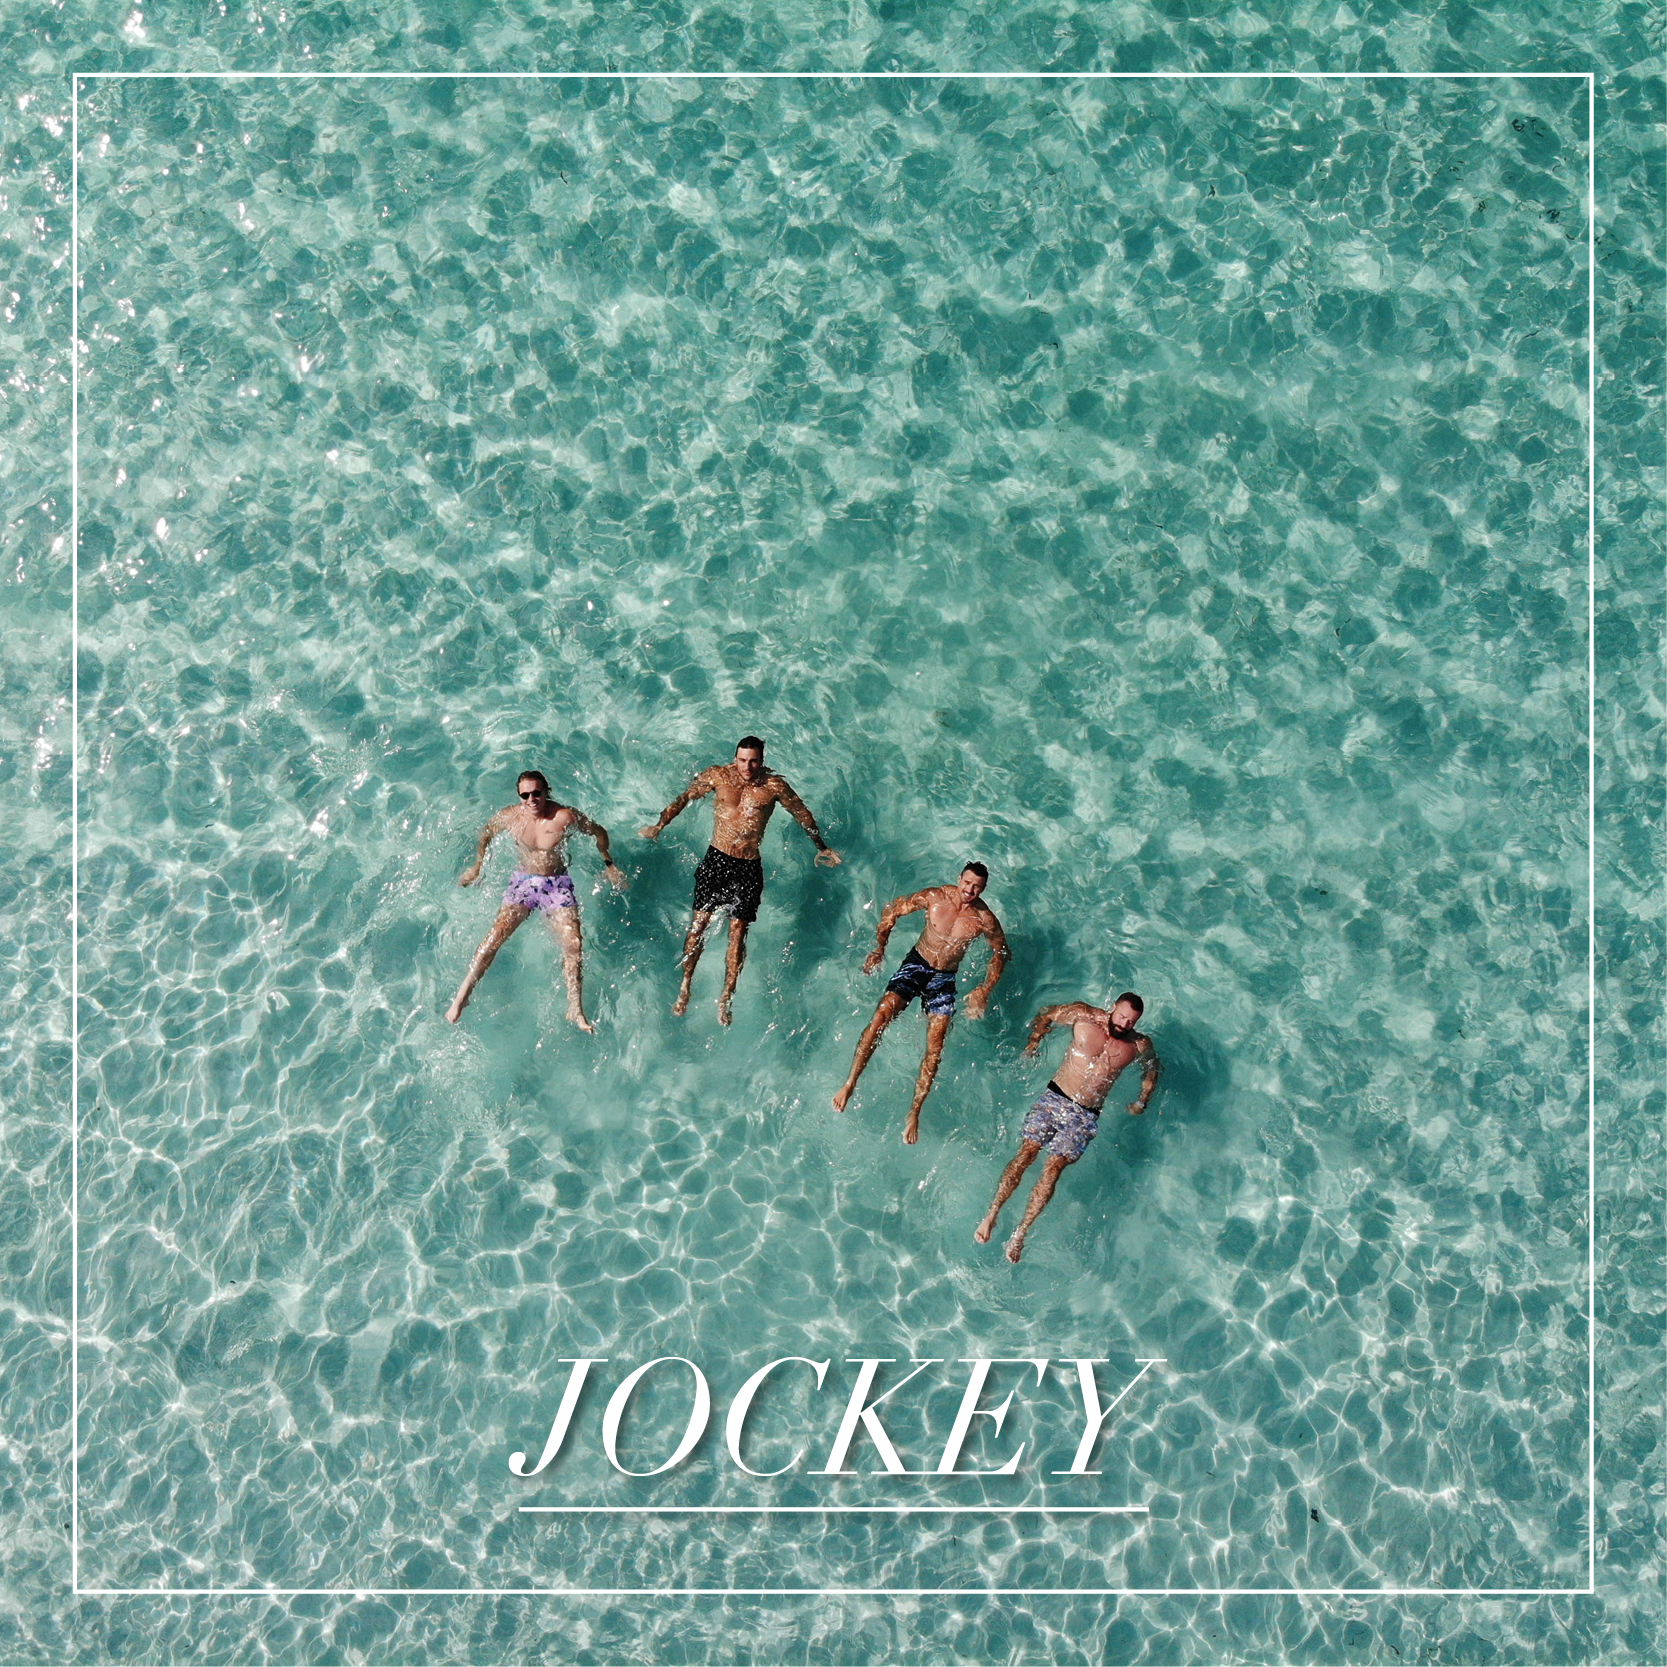 JOCKEY MEN'S GETAWAY       Brief    To launch the 24/7 range of Jockey Men's underwear the brief was to create an immersive experience - leveraging brand ambassador Lee Carseldine's fitness and adventure bona fides - to drive awareness and educate the audience about the product's technology and wearability.      Strategy    Two Birds Talking engaged four influencers to join Carseldine and Jockey on the ultimate men's getaway on Fraser Island. Personal trainers Ben Seymour and Cameron Byrnes, The Tailored Man editor Dalton Graham, content creator Jake Rich and Carseldine put the 24/7 Jockey underwear through its paces over three days with swimming, hiking, vigorous daily exercise and more to demonstrate the range's moisture-wicking technology and around-the-clock wearability. This was strongly supported by branded moments and daily personalised content captured and created by Rich and delivered to guests to encourage them to share on social media.     Results    Three day public relations campaign  4million+ social media eyeballs, from 106 posts by guests  106 social media hits – far exceeding campaign KPI of 28.